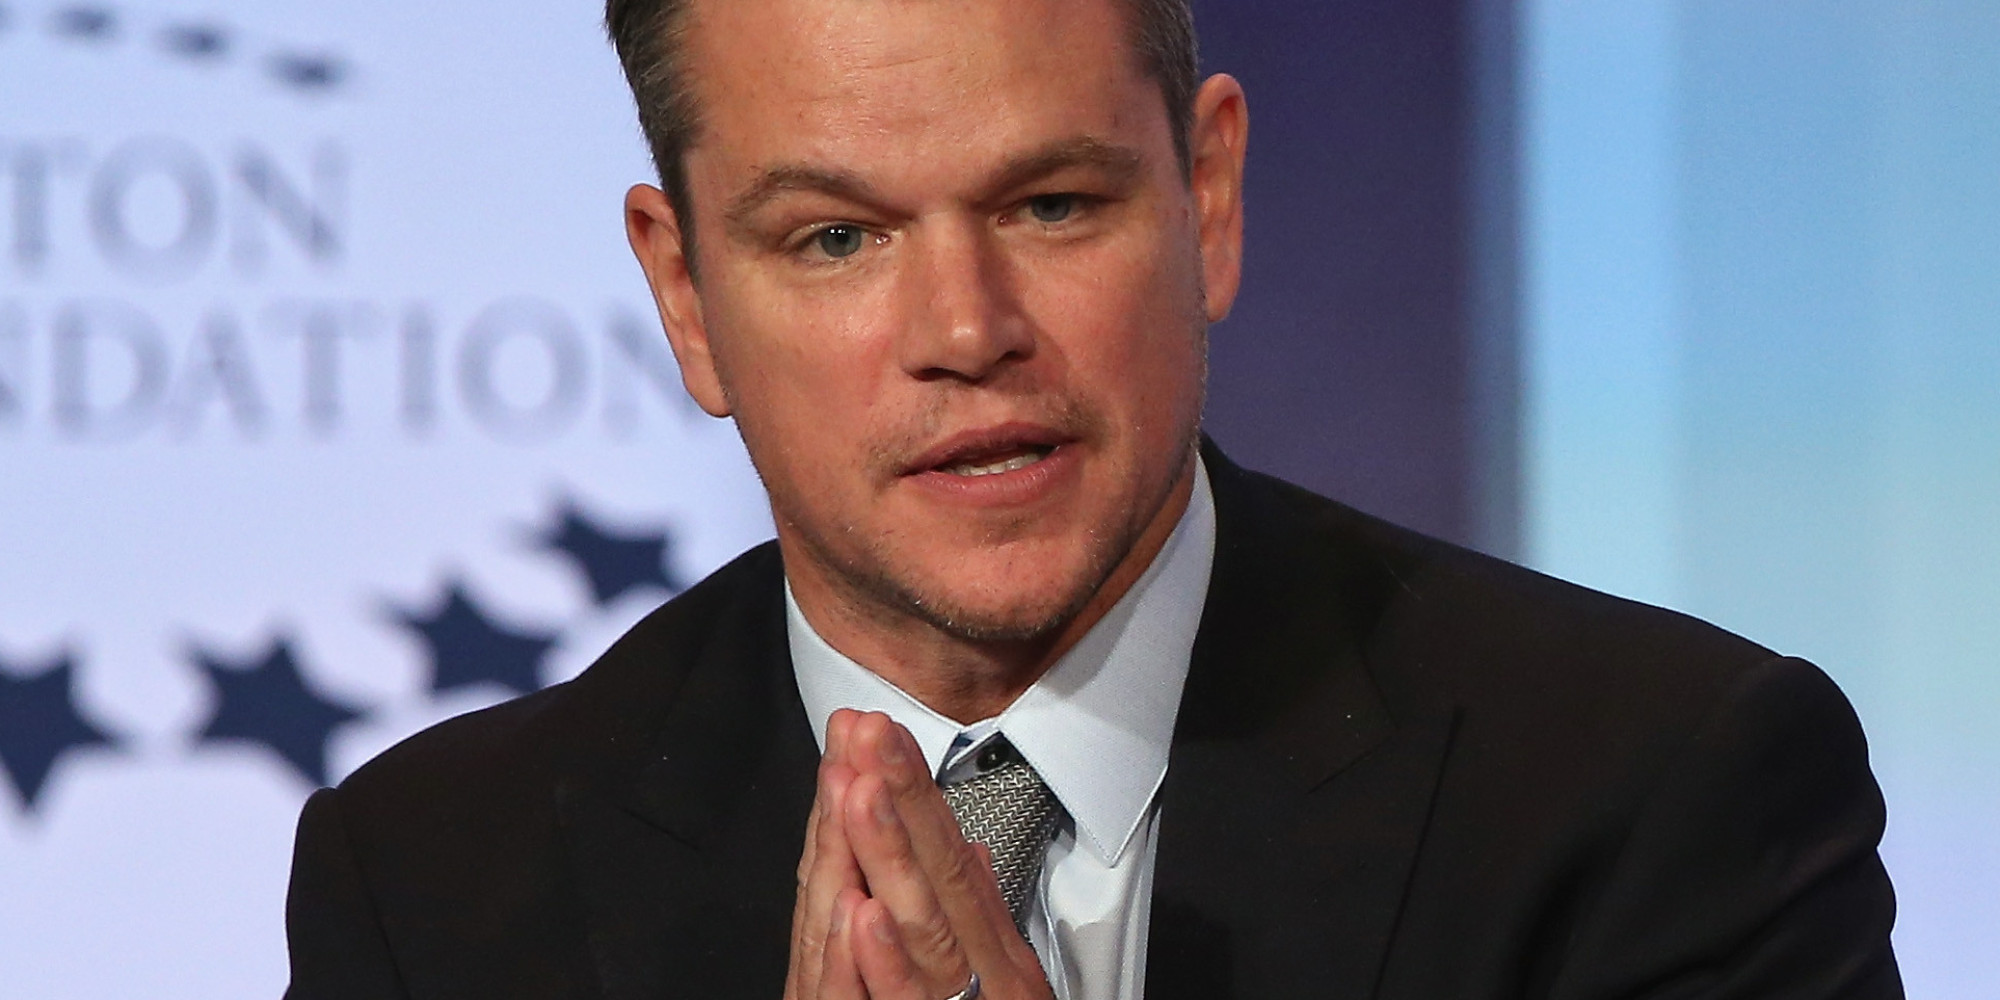 Matt Damon Nails Impression Of Bill Clinton, Raises Water Awareness While He's At It